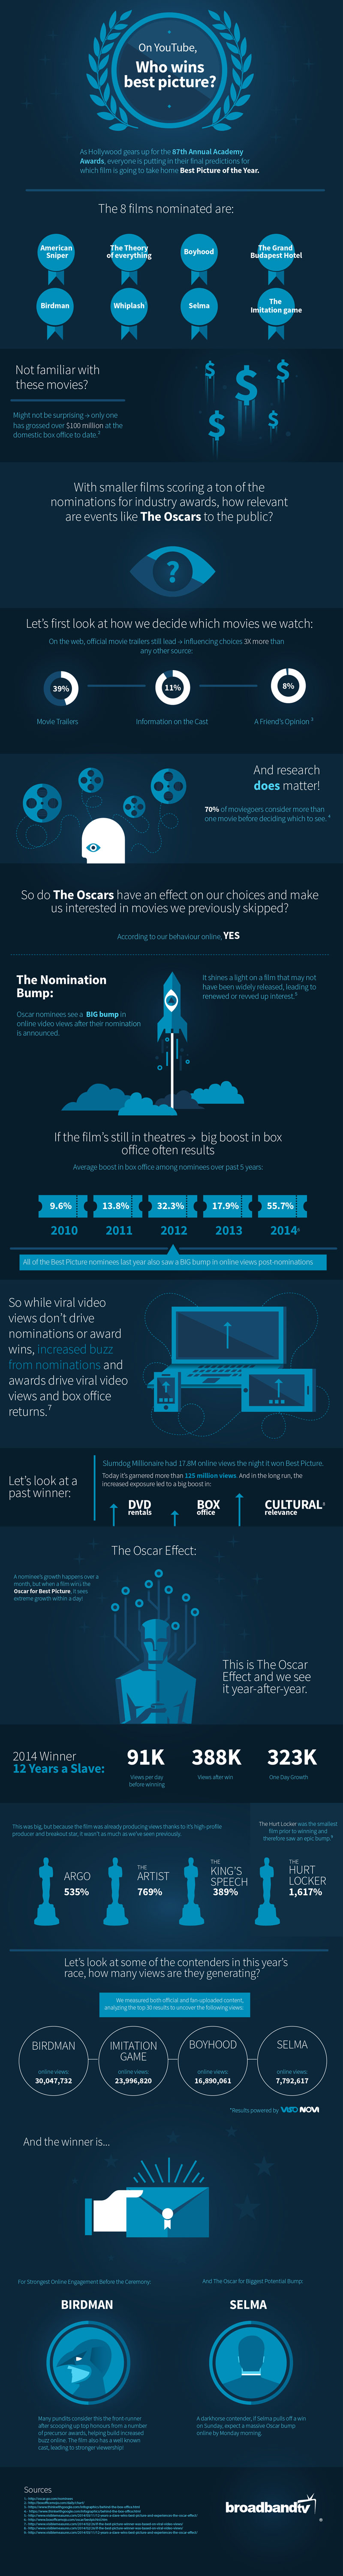 Infographic 3 On YouTube, Who Wins the Best Picture Academy Award?